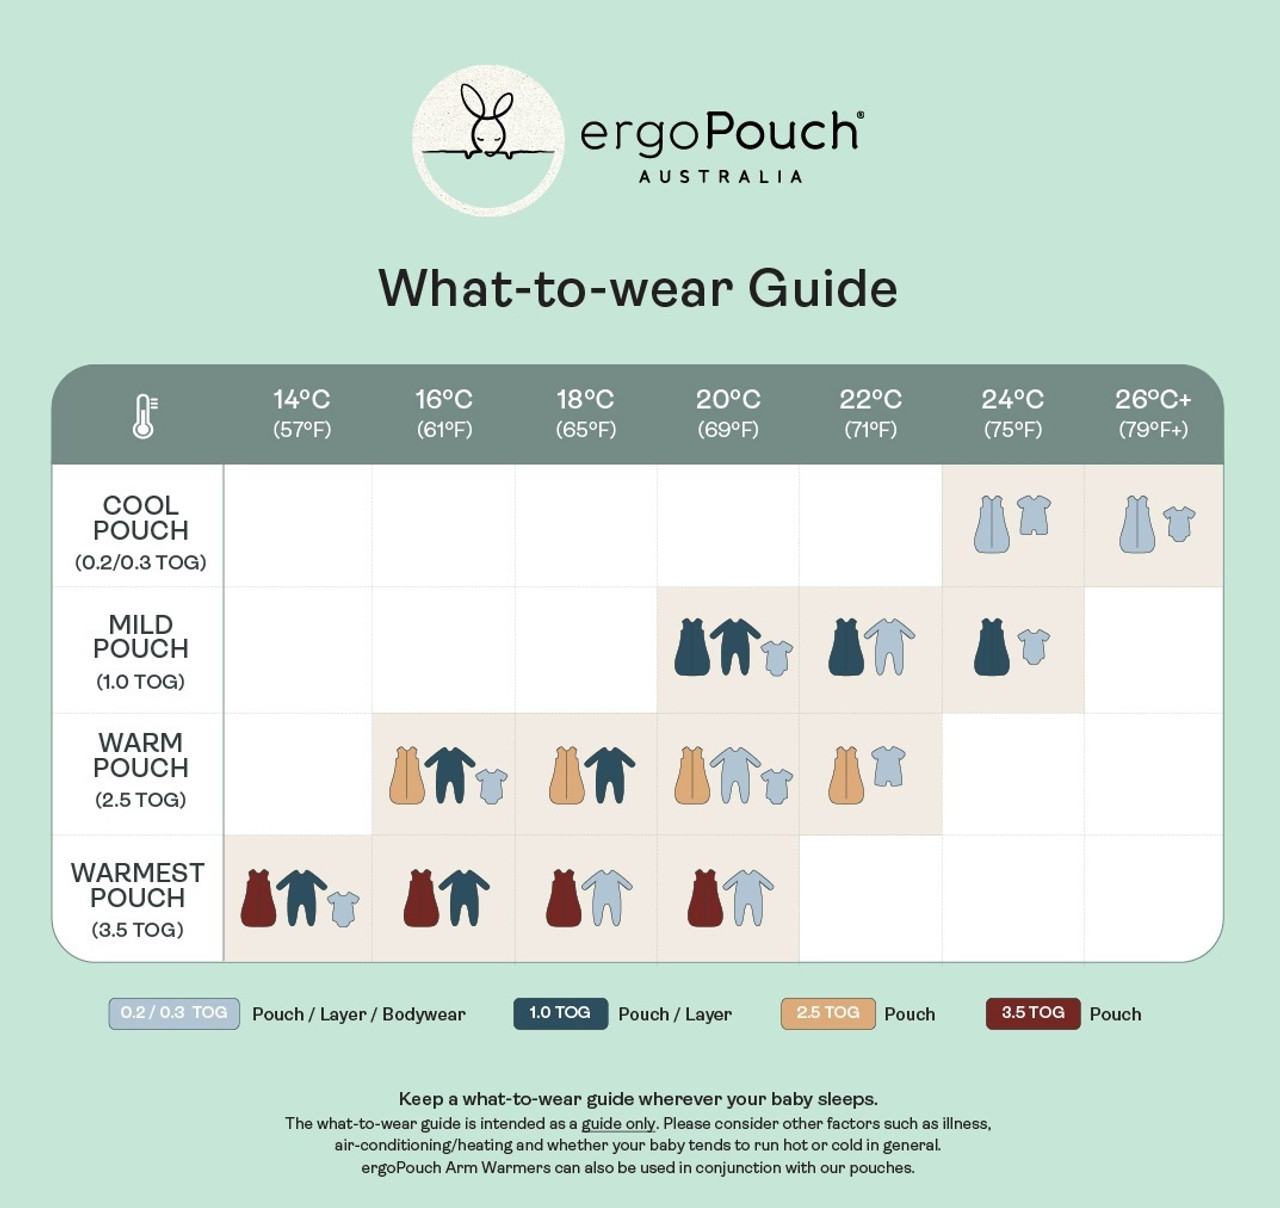 Ergopouch Sleepsuit Bag 3.5 Tog 8-24 Months at Baby Barn Discounts